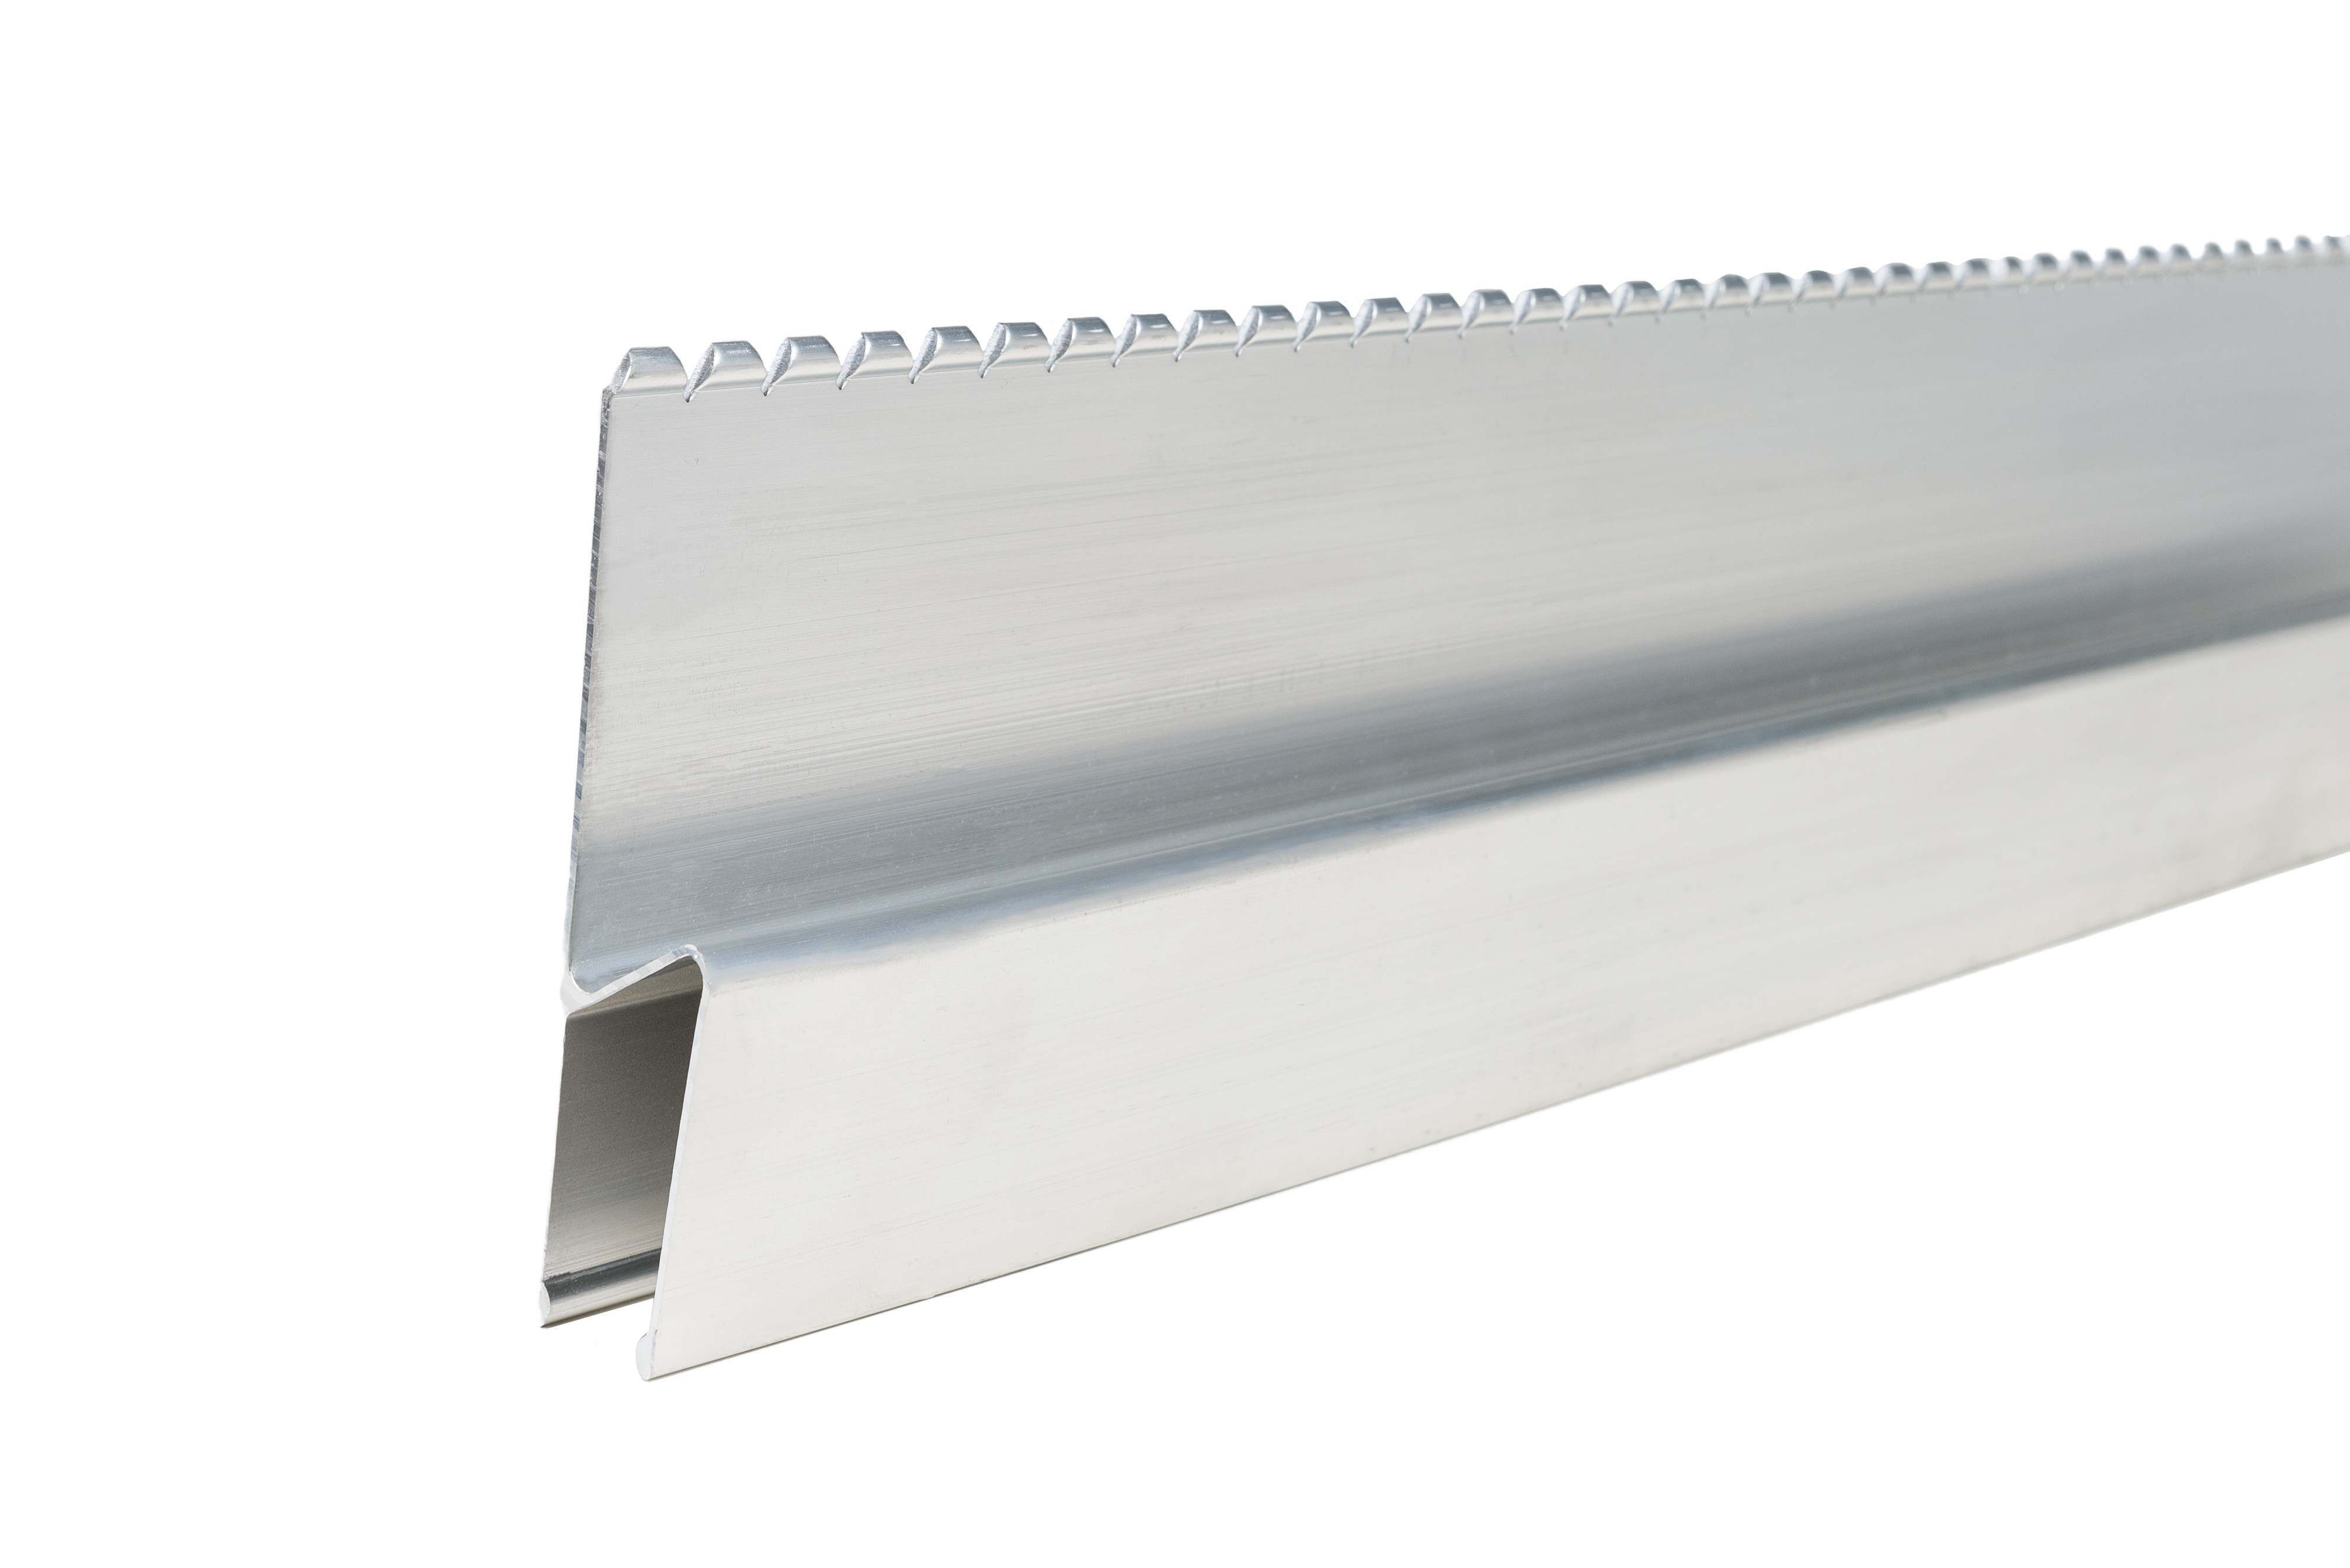 1.2mtr Serrated Feather Edge Rule H Section